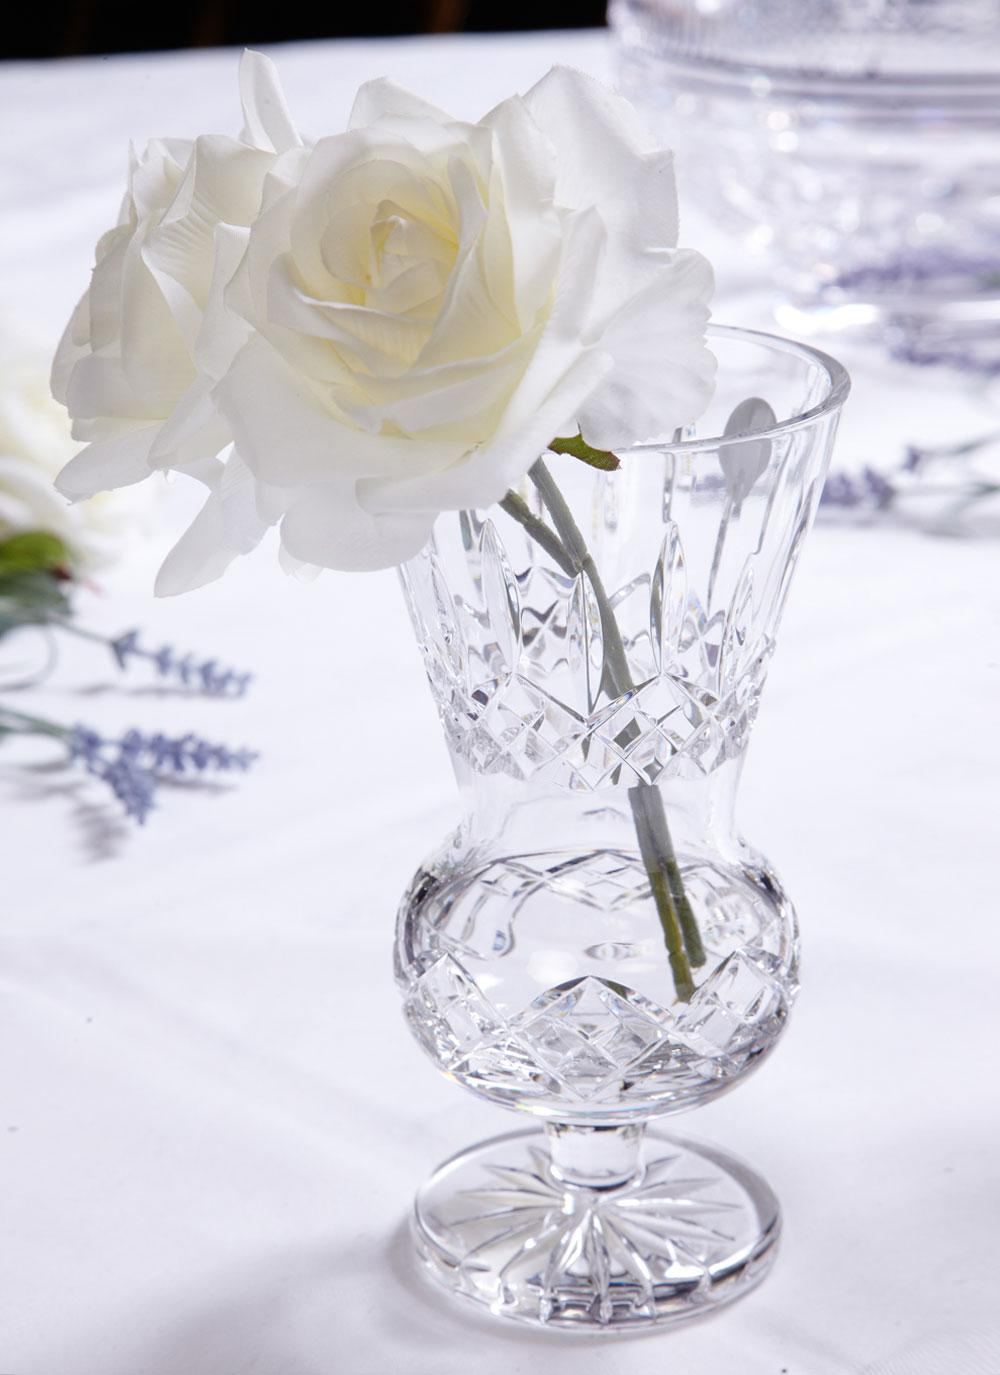 Waterford crystal lismore thistle vase blarney waterford crystal lismore thistle vase floridaeventfo Image collections